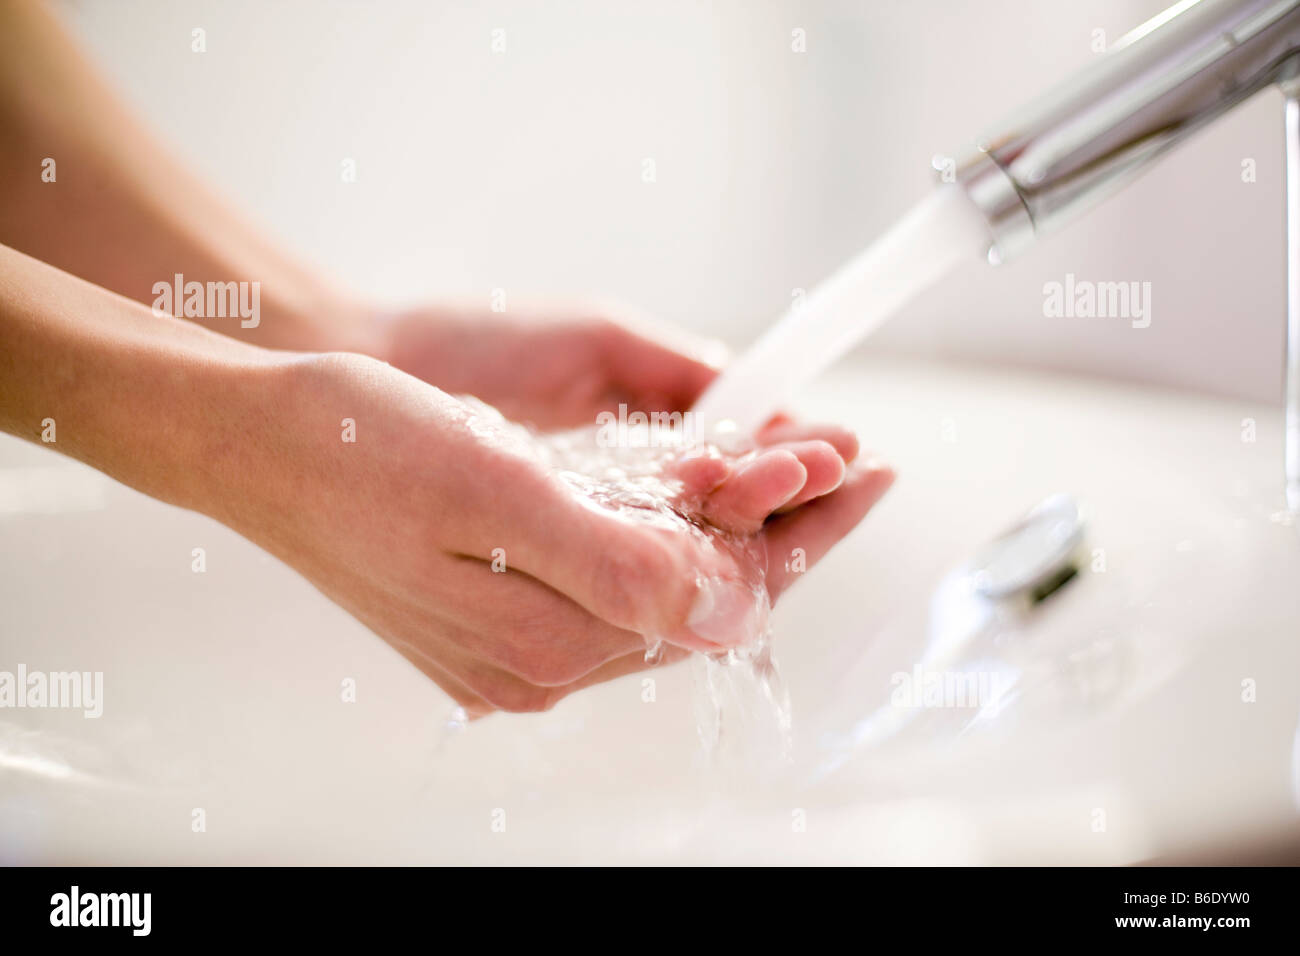 Washing hands under running water from a tap. - Stock Image